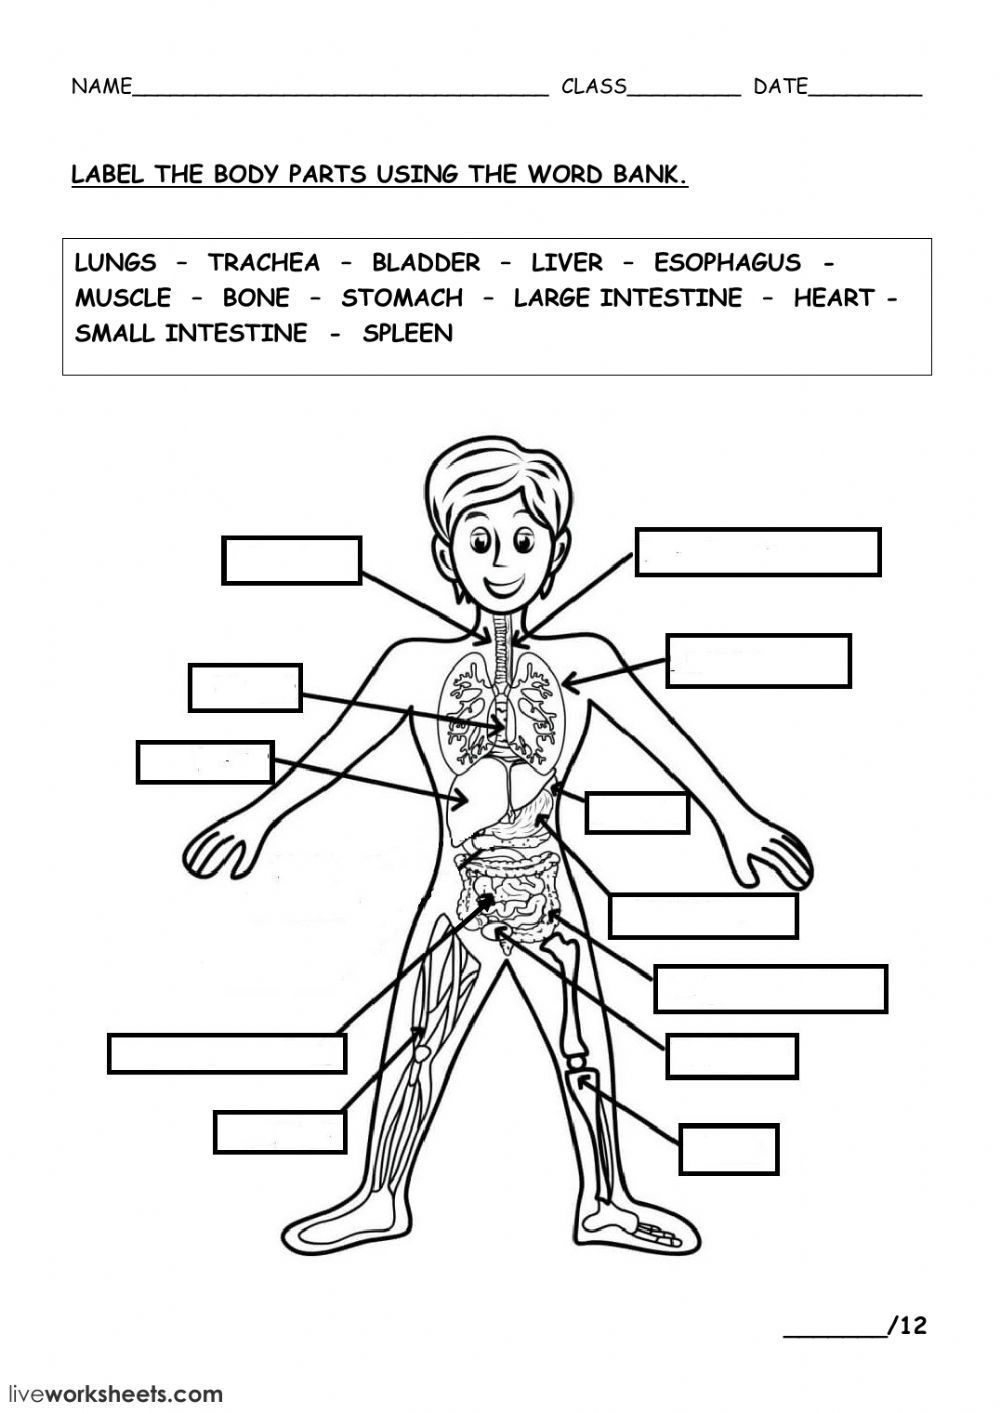 THE HUMAN BODY - Interactive worksheet   Body systems worksheets [ 1413 x 1000 Pixel ]